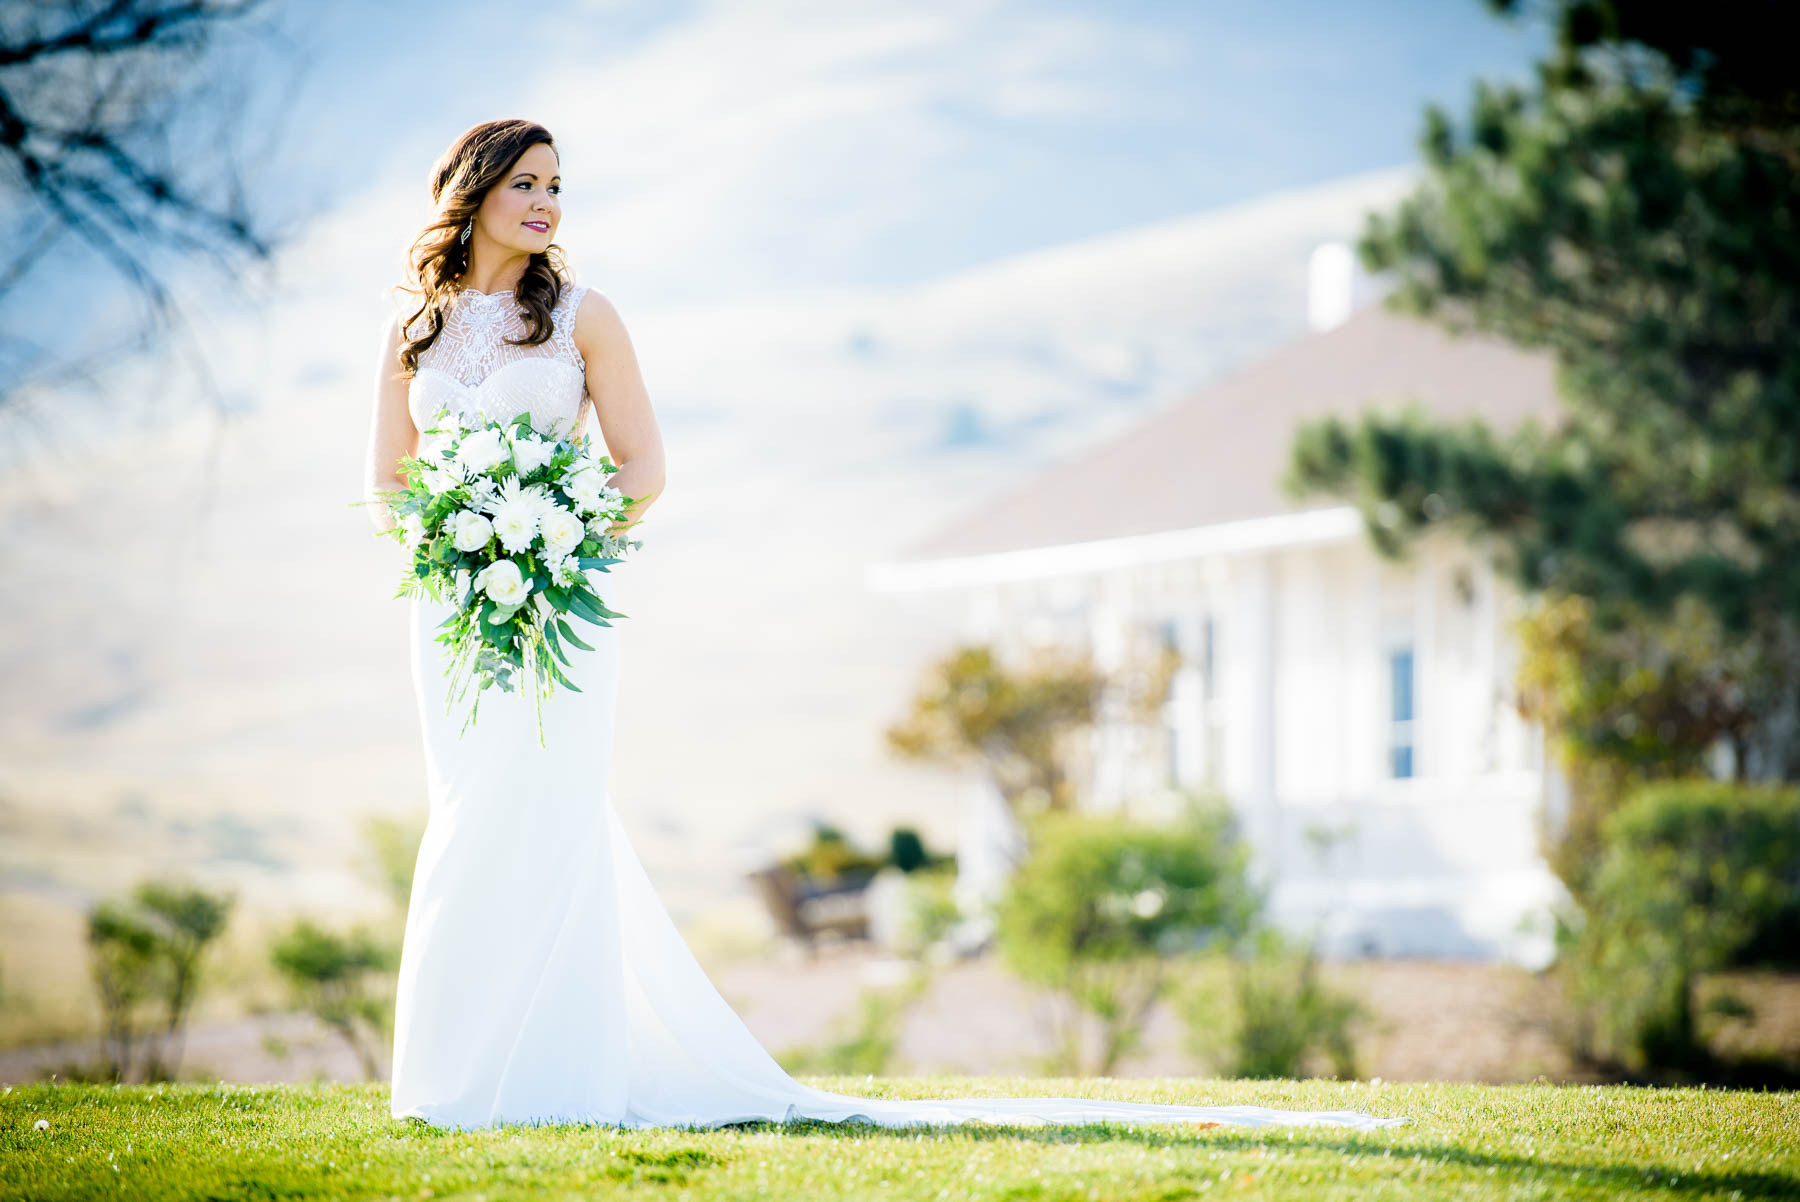 Bridal portrait on her wedding day at the Manor House in Littleton, Colorado.